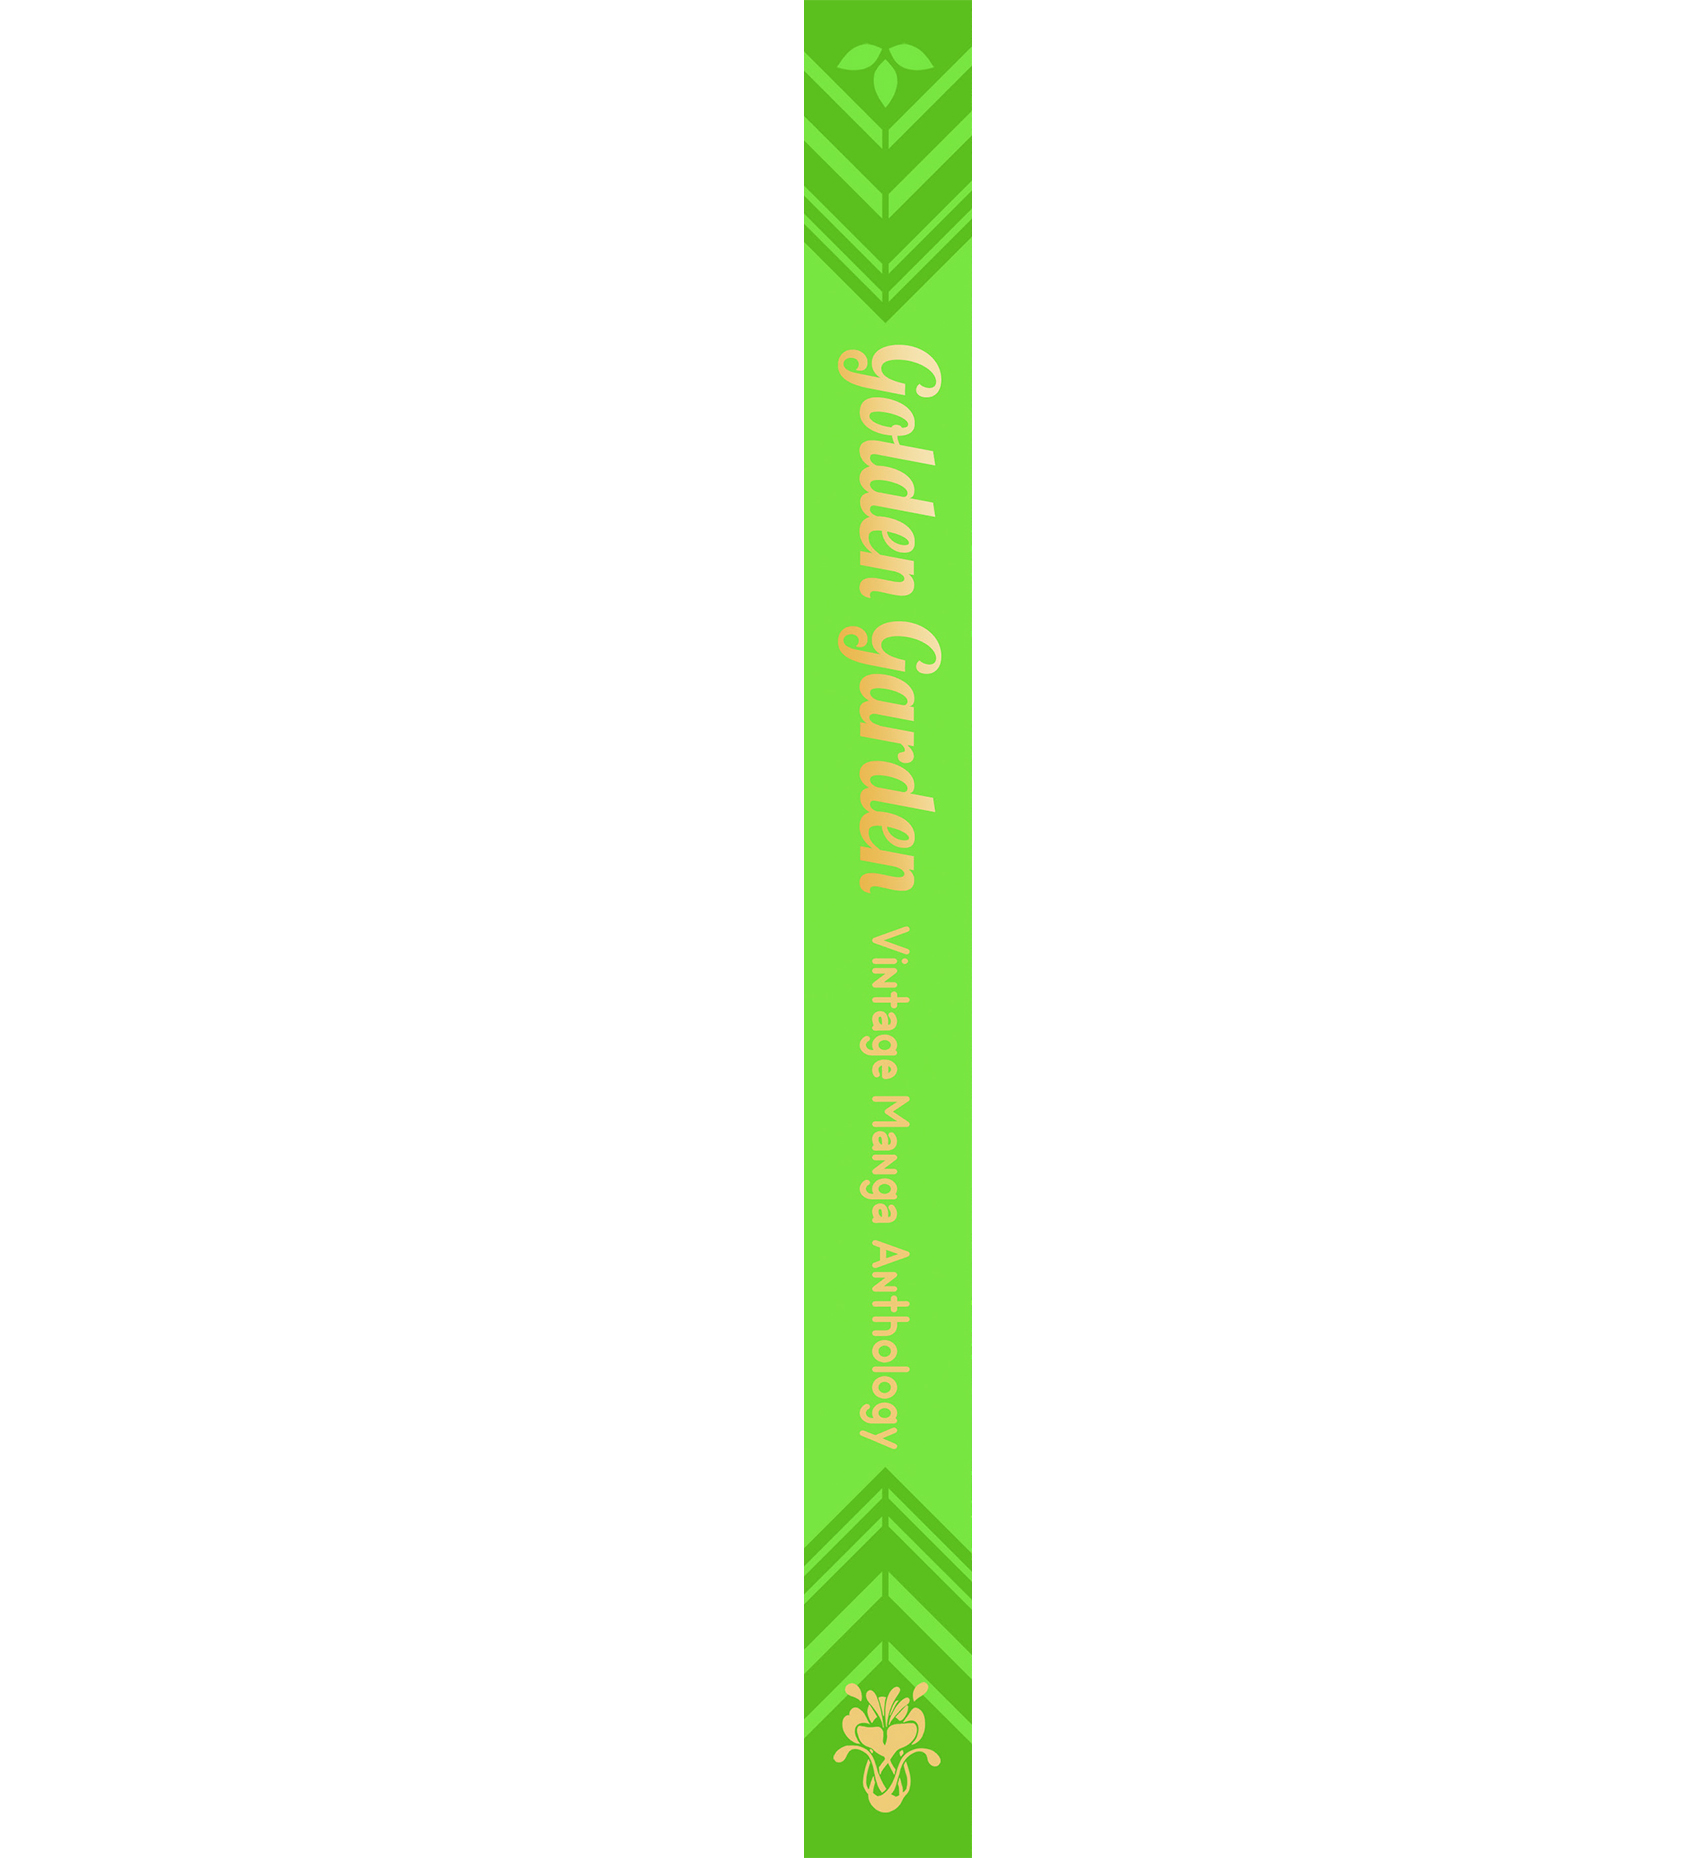 GoldenGarden-COVER-spine.jpg